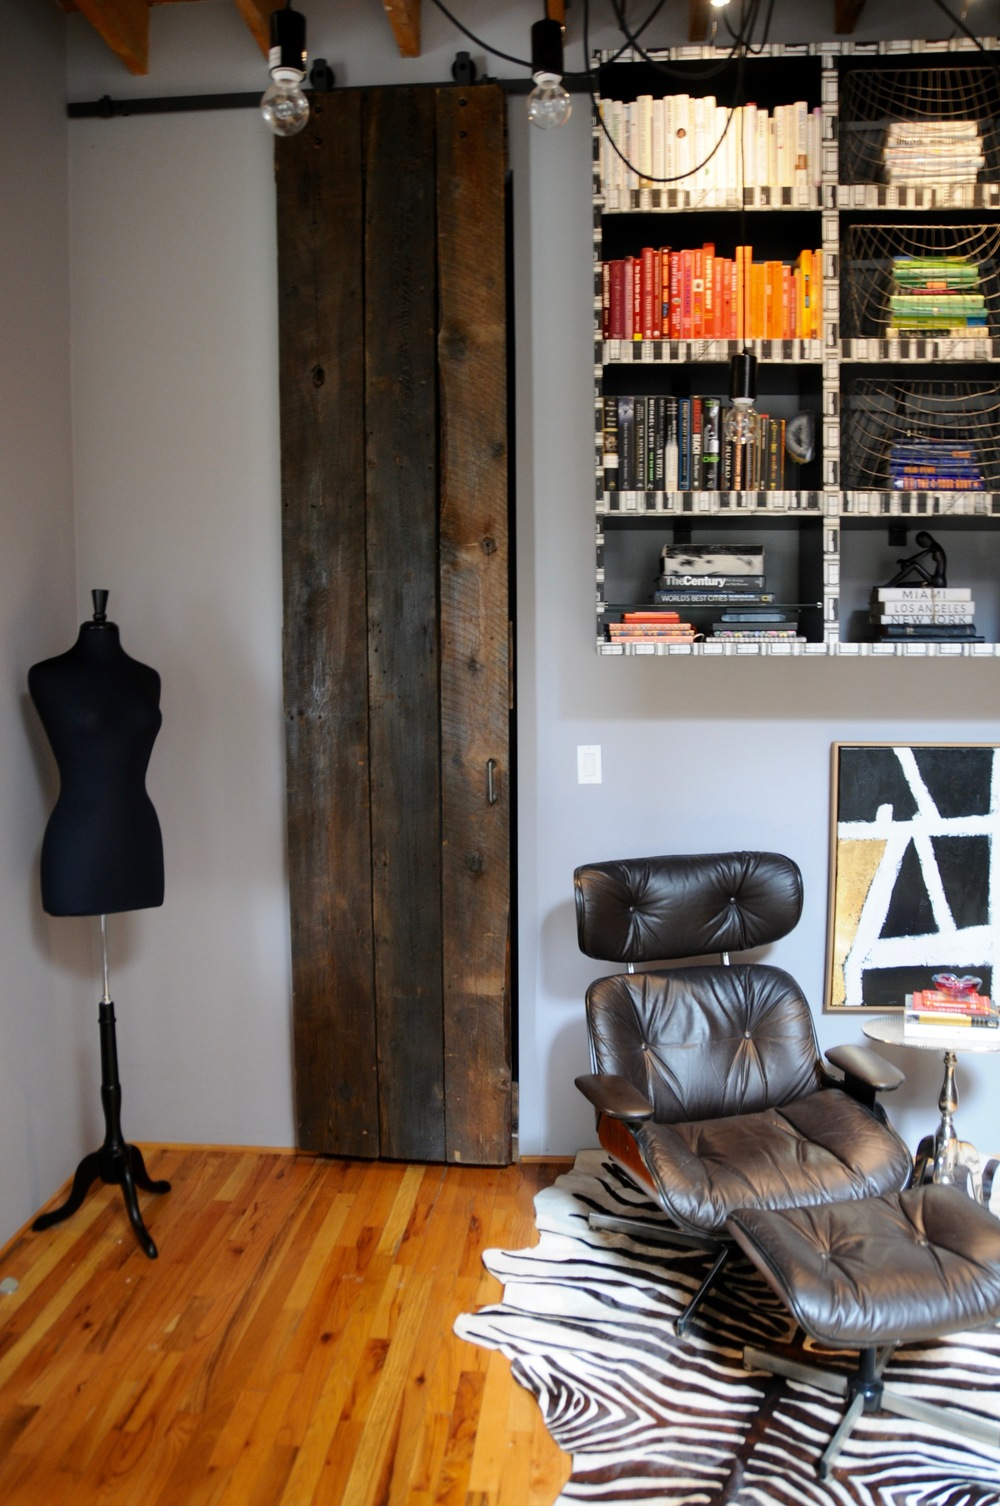 Access to the closet via a custom barn door. The height of the loft requires attention to scale and proportion so that the volume of the home does not detract from its comfort.